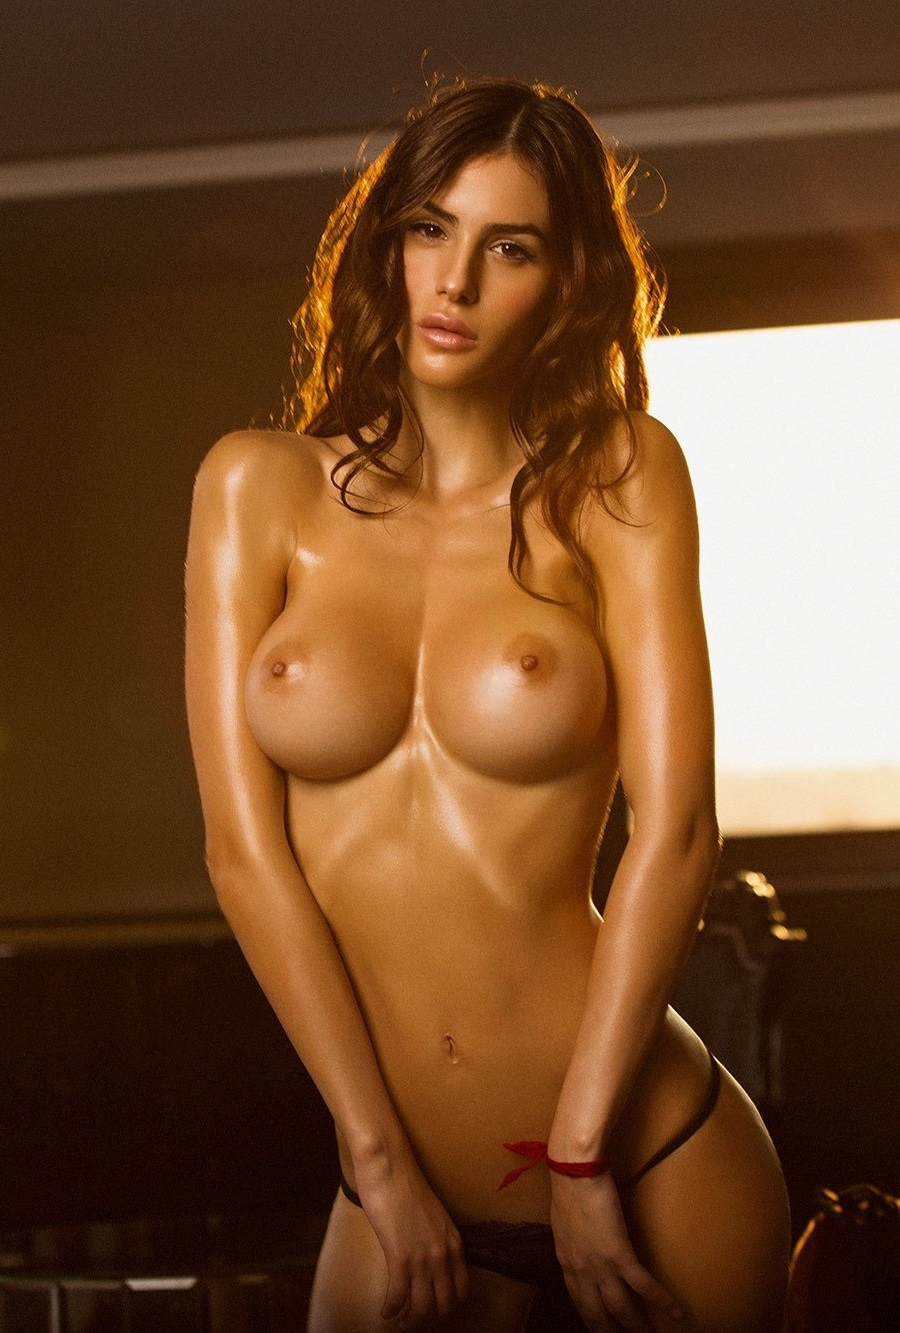 Sex Silvia Caruso nudes (71 photos), Sexy, Fappening, Feet, braless 2018